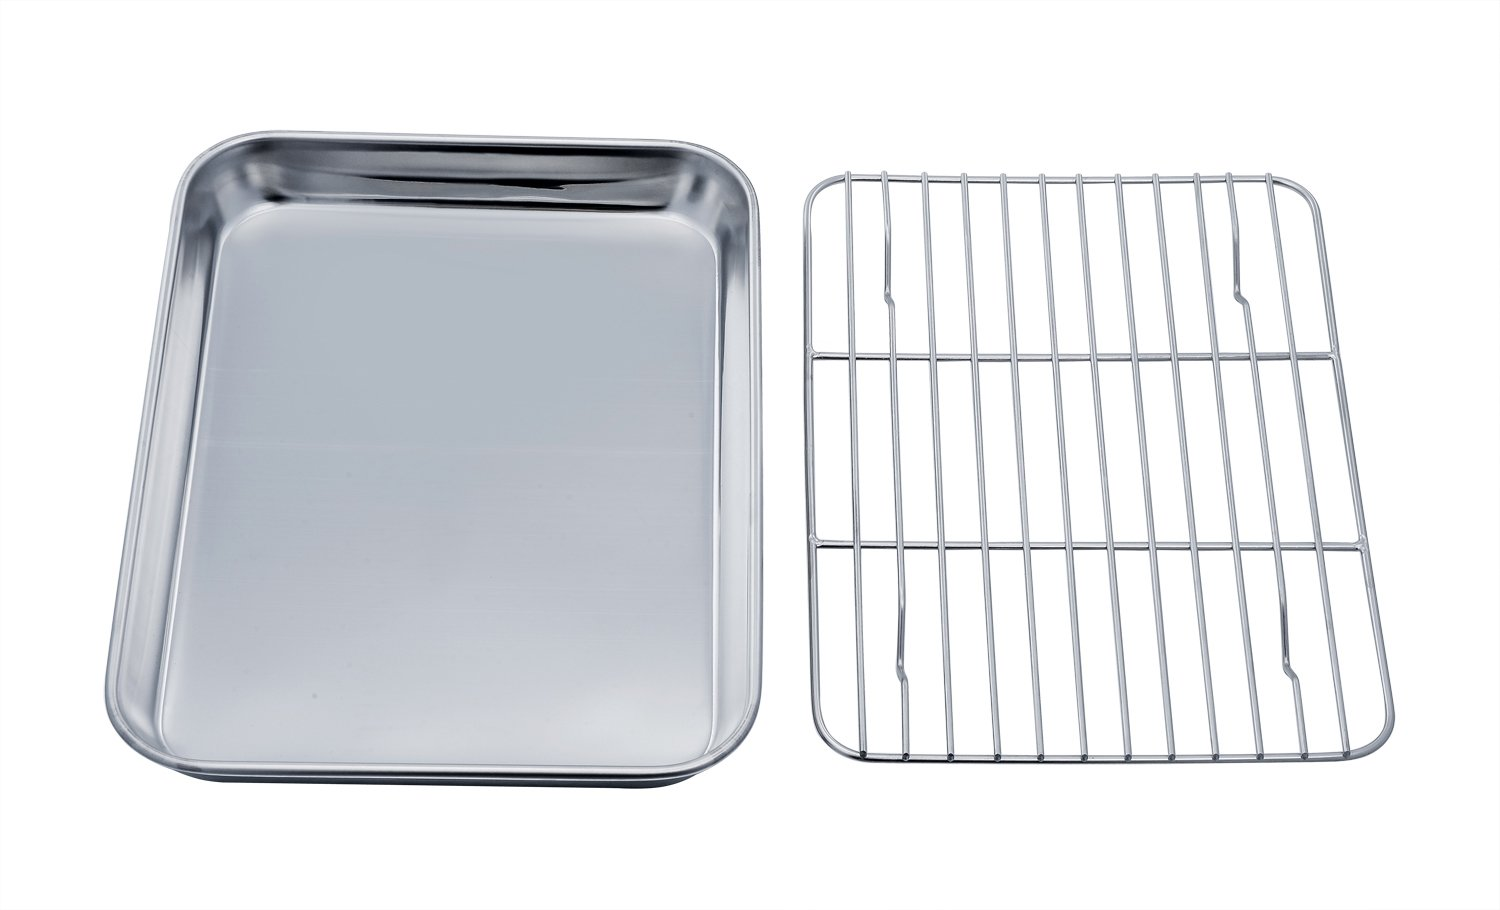 TeamFar Toaster Oven Tray and Rack Set, Stainless Steel Toaster Oven Pan Broiler Pan, Compact 7''x9''x1'', Non Toxic & Healthy, Easy Clean & Dishwasher Safe by TeamFar